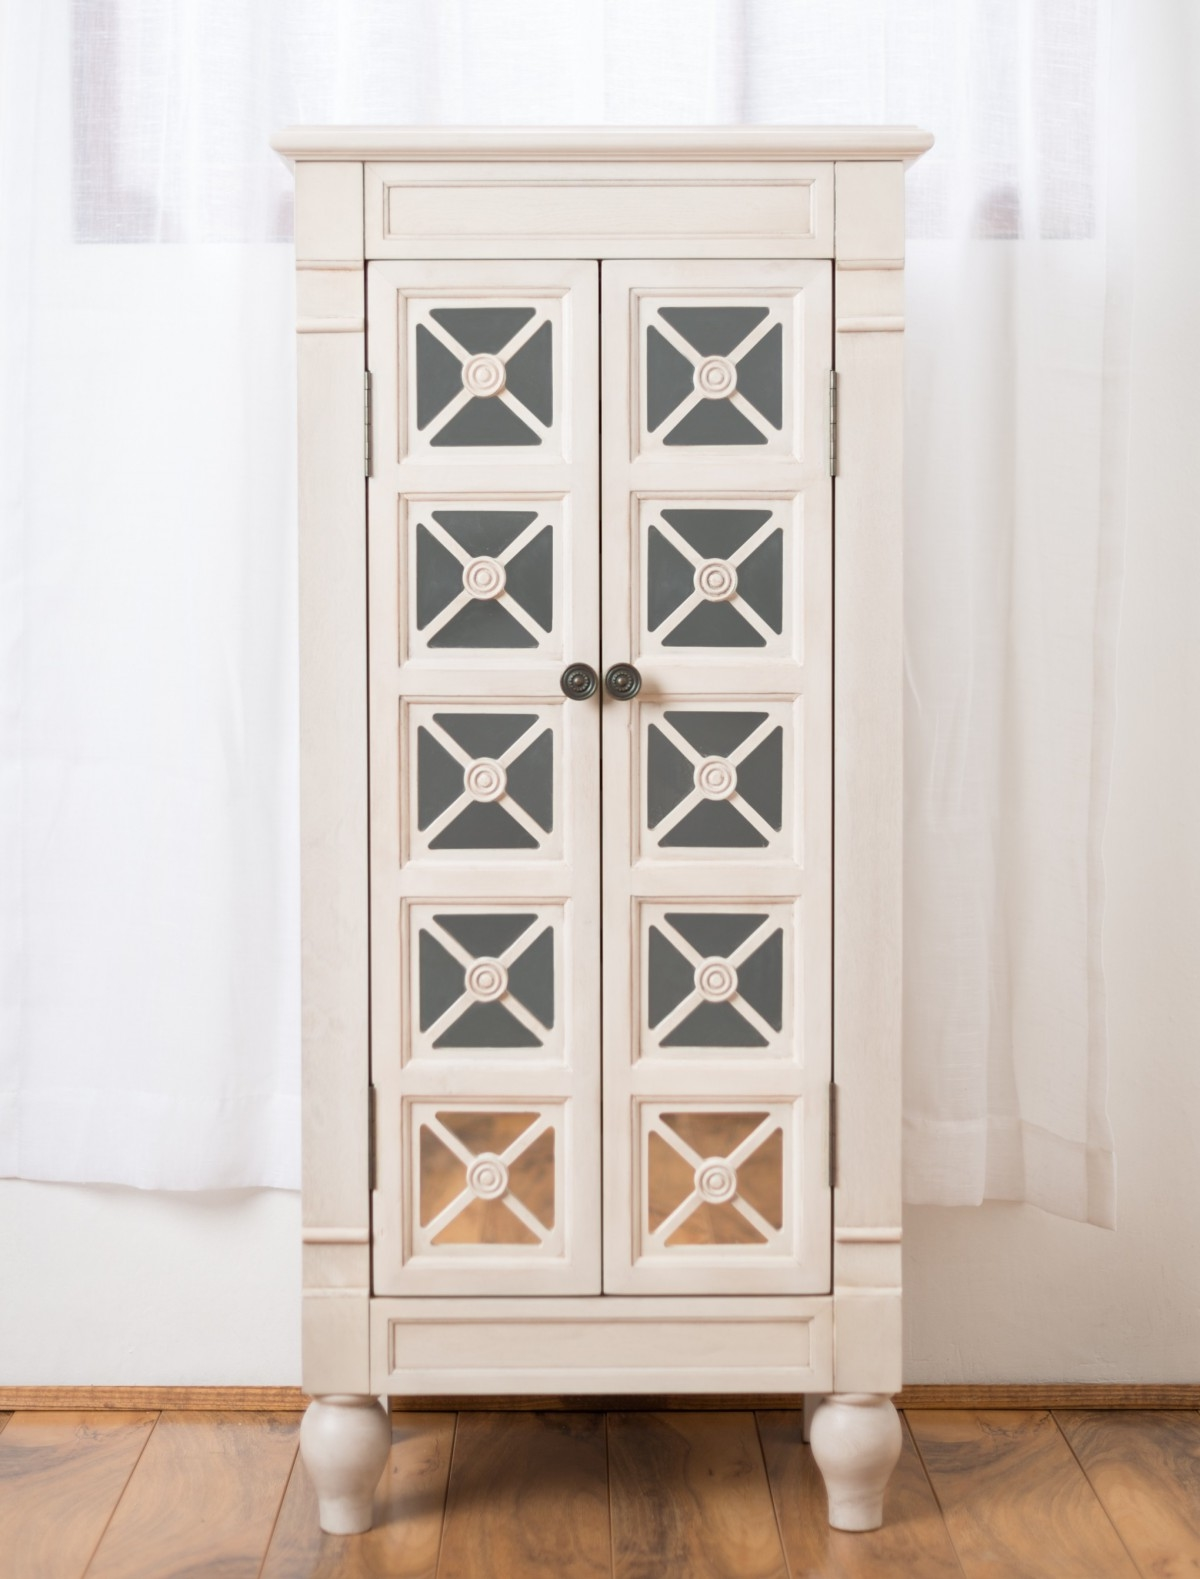 Classic White Jewelry Armoire On Laminate Floor Combined With Calming Plain Window Treatment Photo 1054